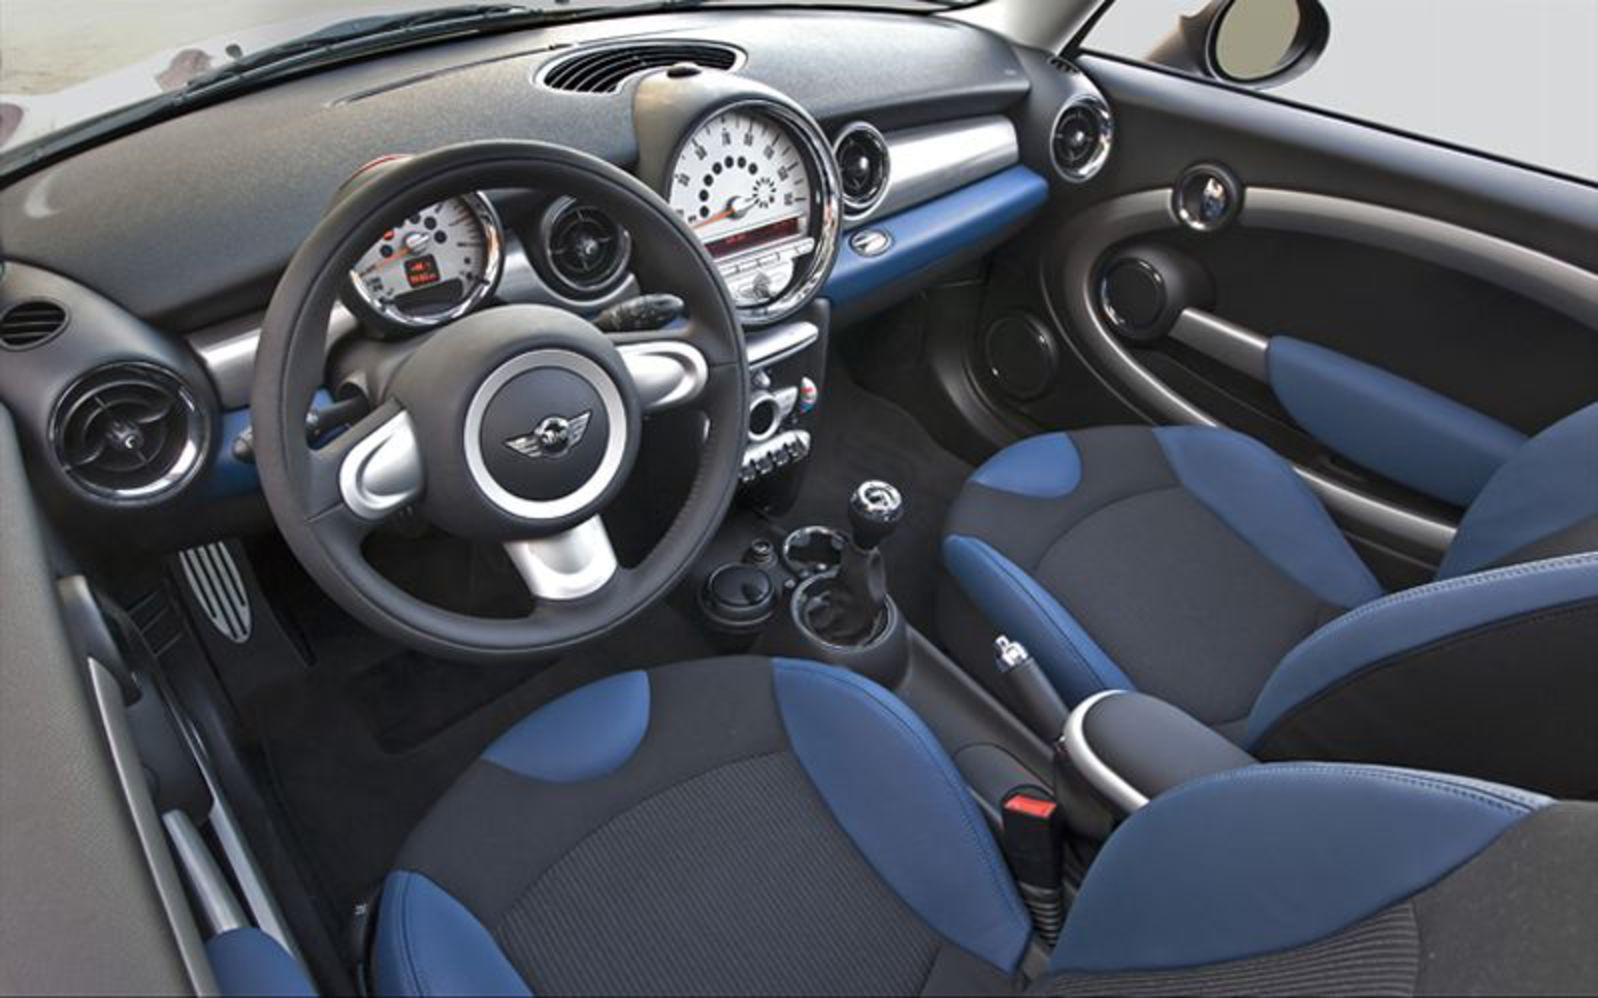 2008 Mini Cooper S Clubman Interior View Photo 5